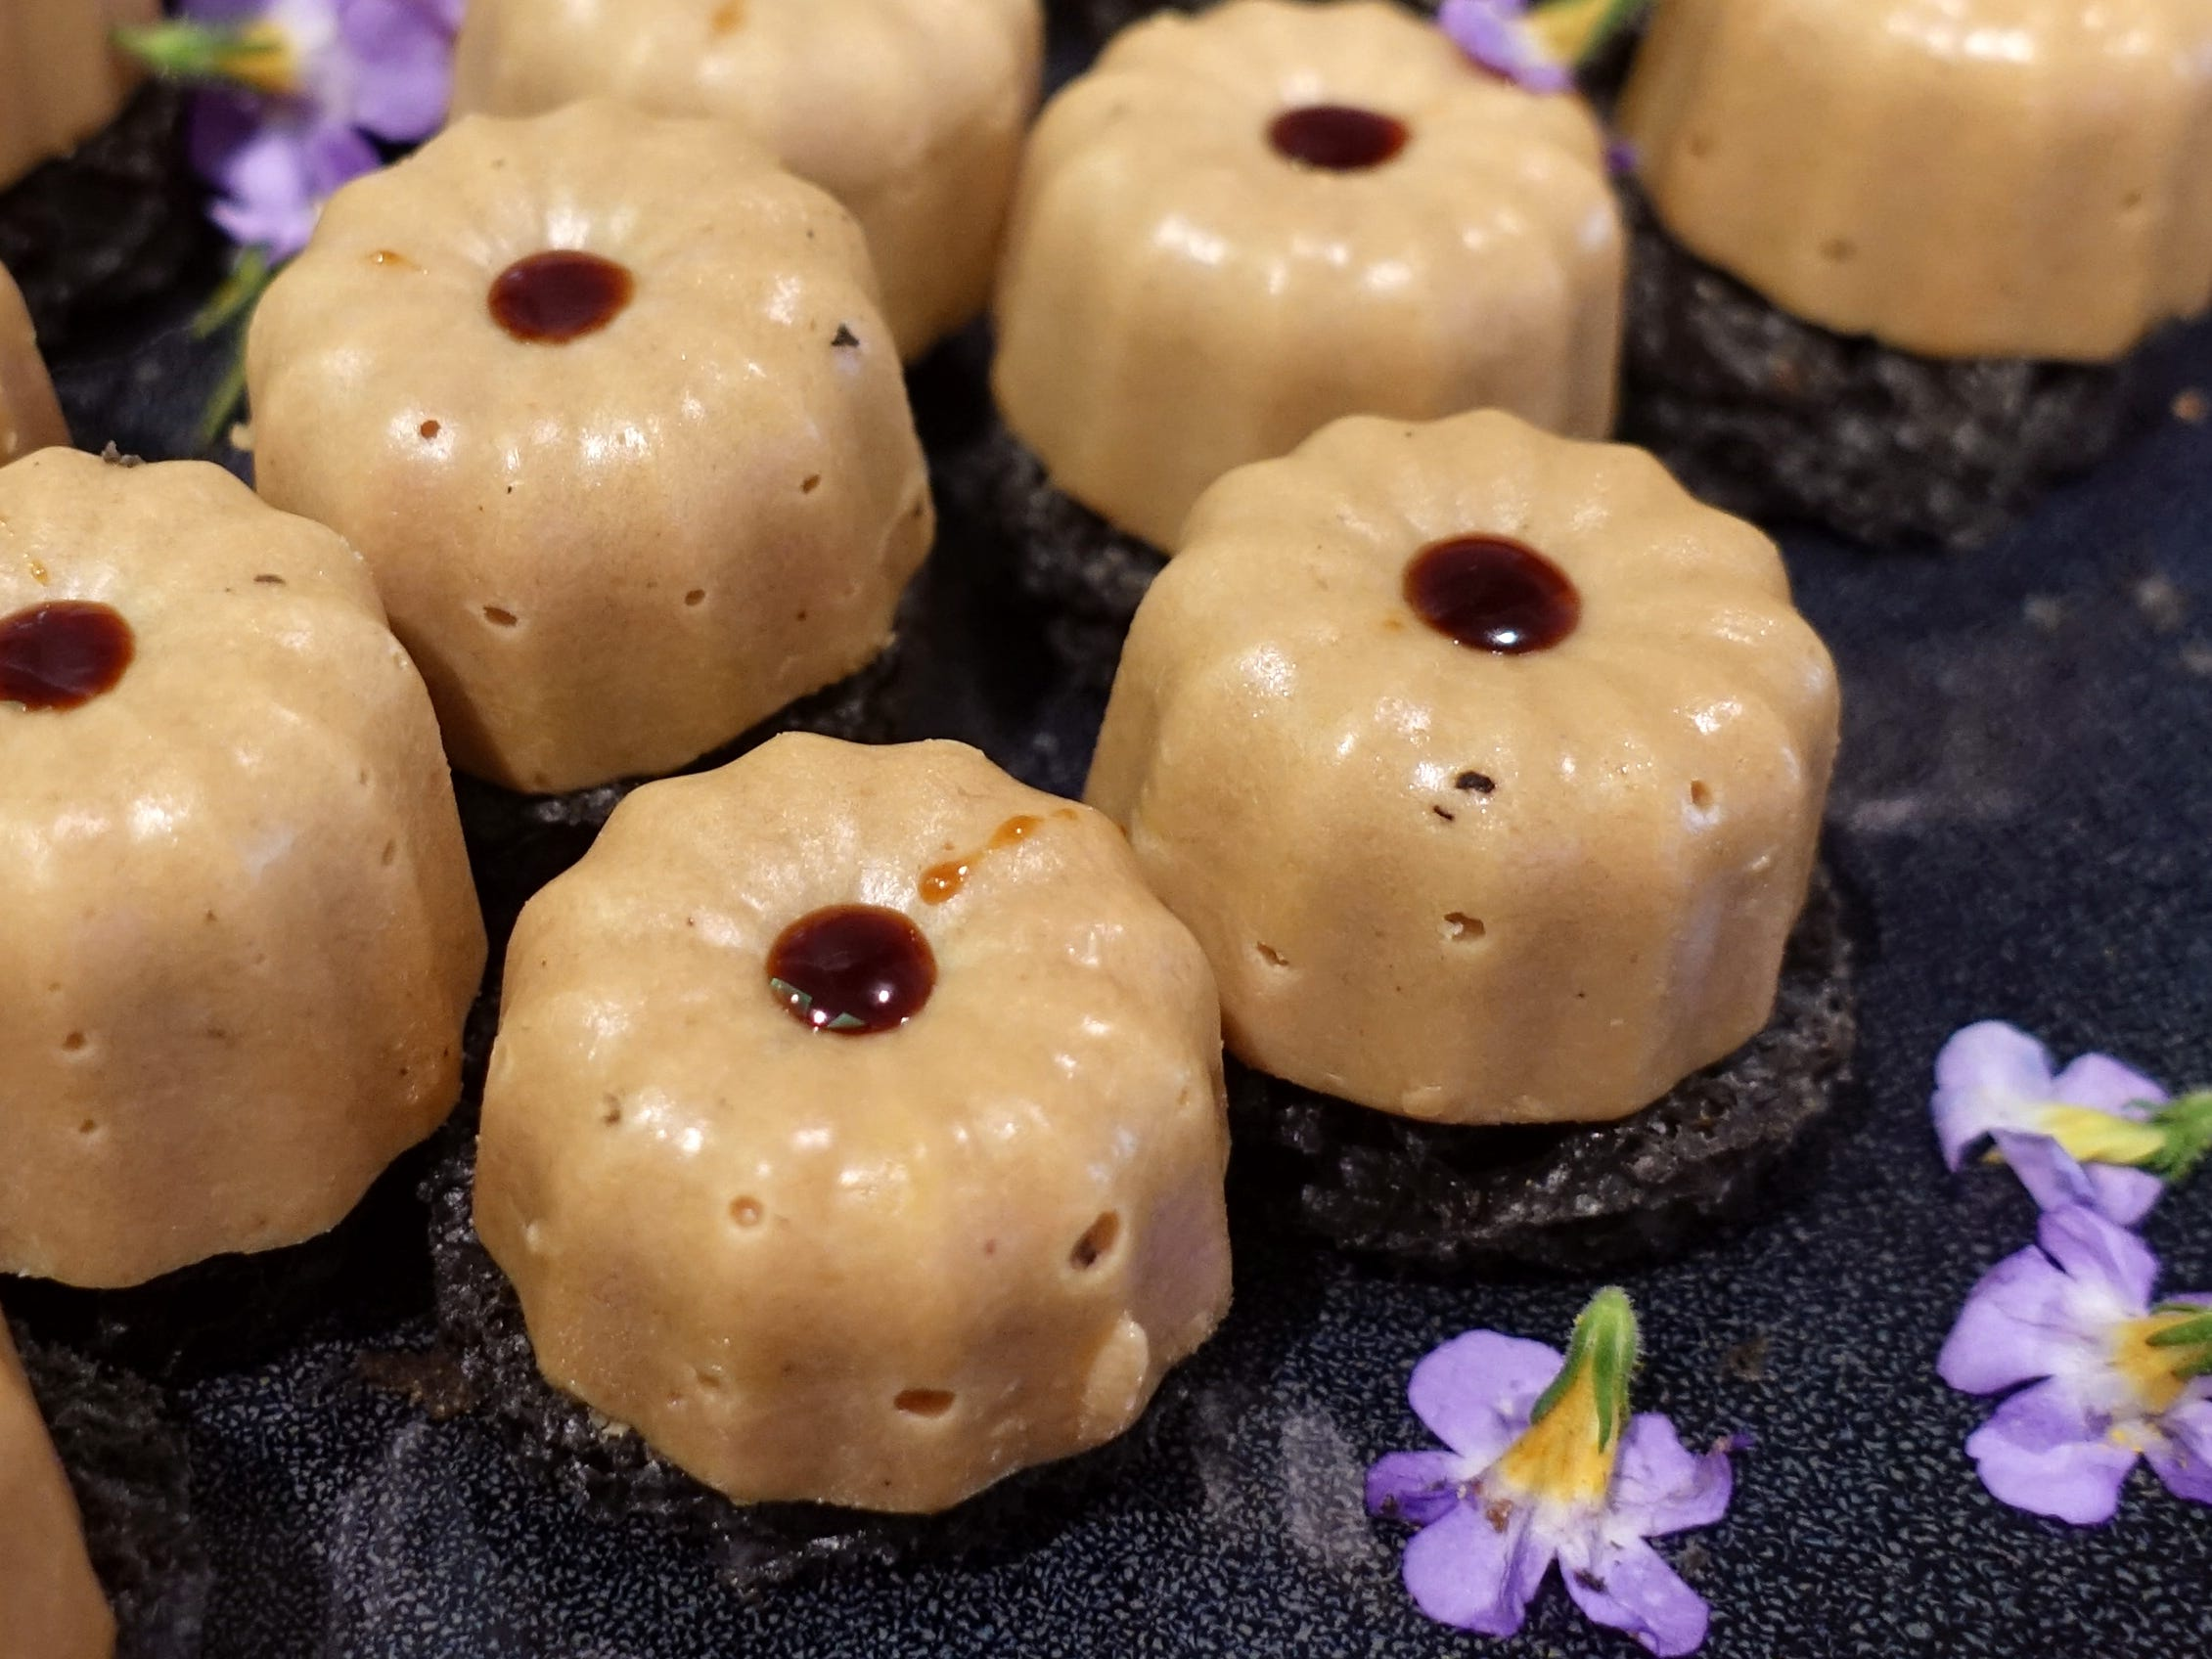 Canneles of foie gras with black brioche from Geordie's Restaurant at the Wrigley Mansion at the 2019 Devour Culinary Classic at the Desert Botanical Garden in Phoenix.